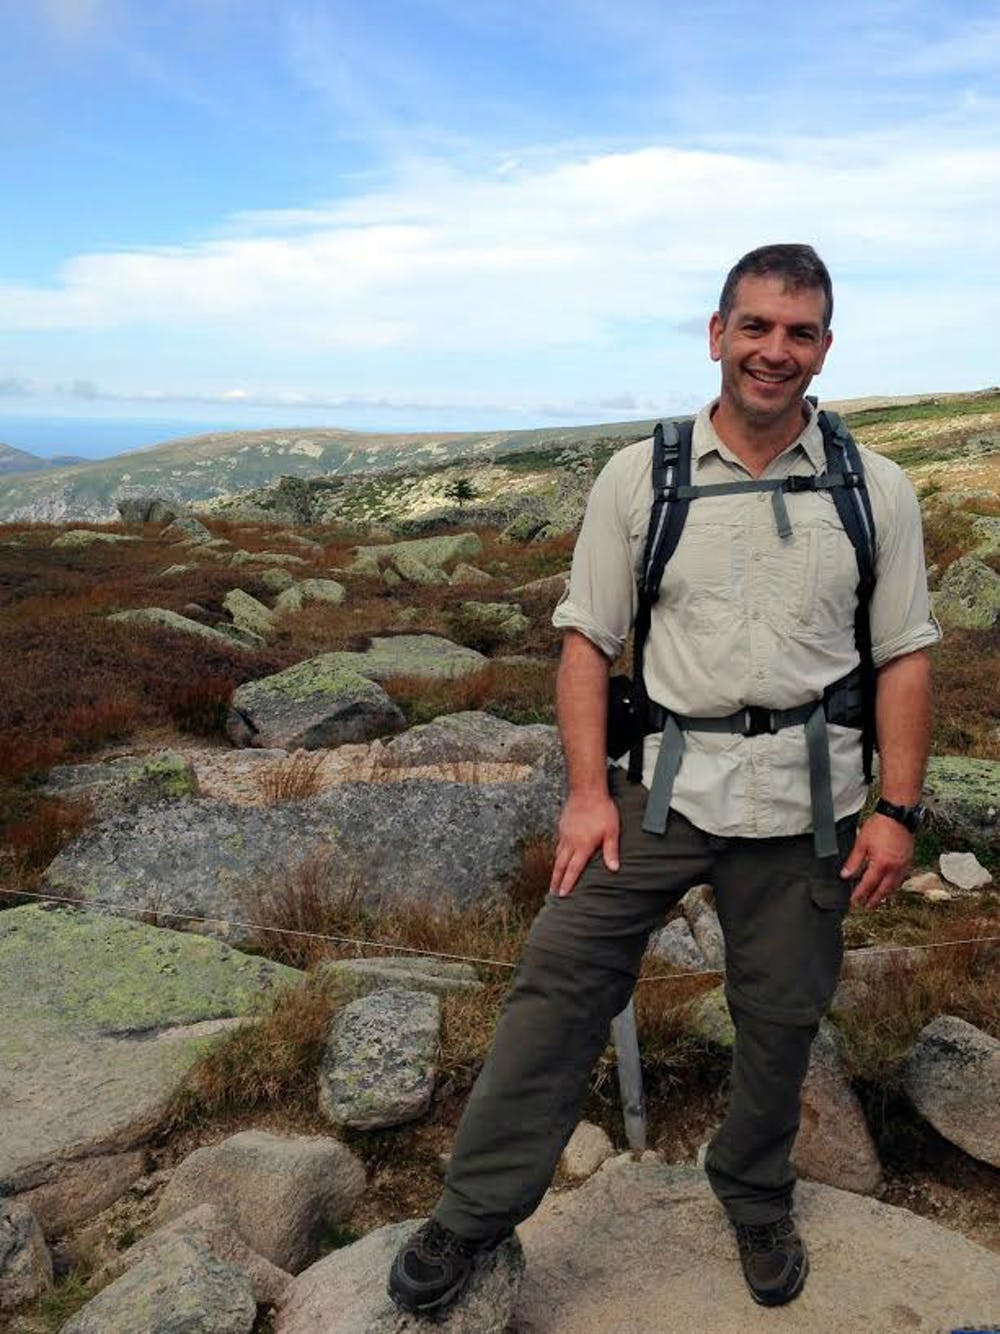 <p>Gobin said his experience at Darden helped him found and run Warrior Hike.</p>